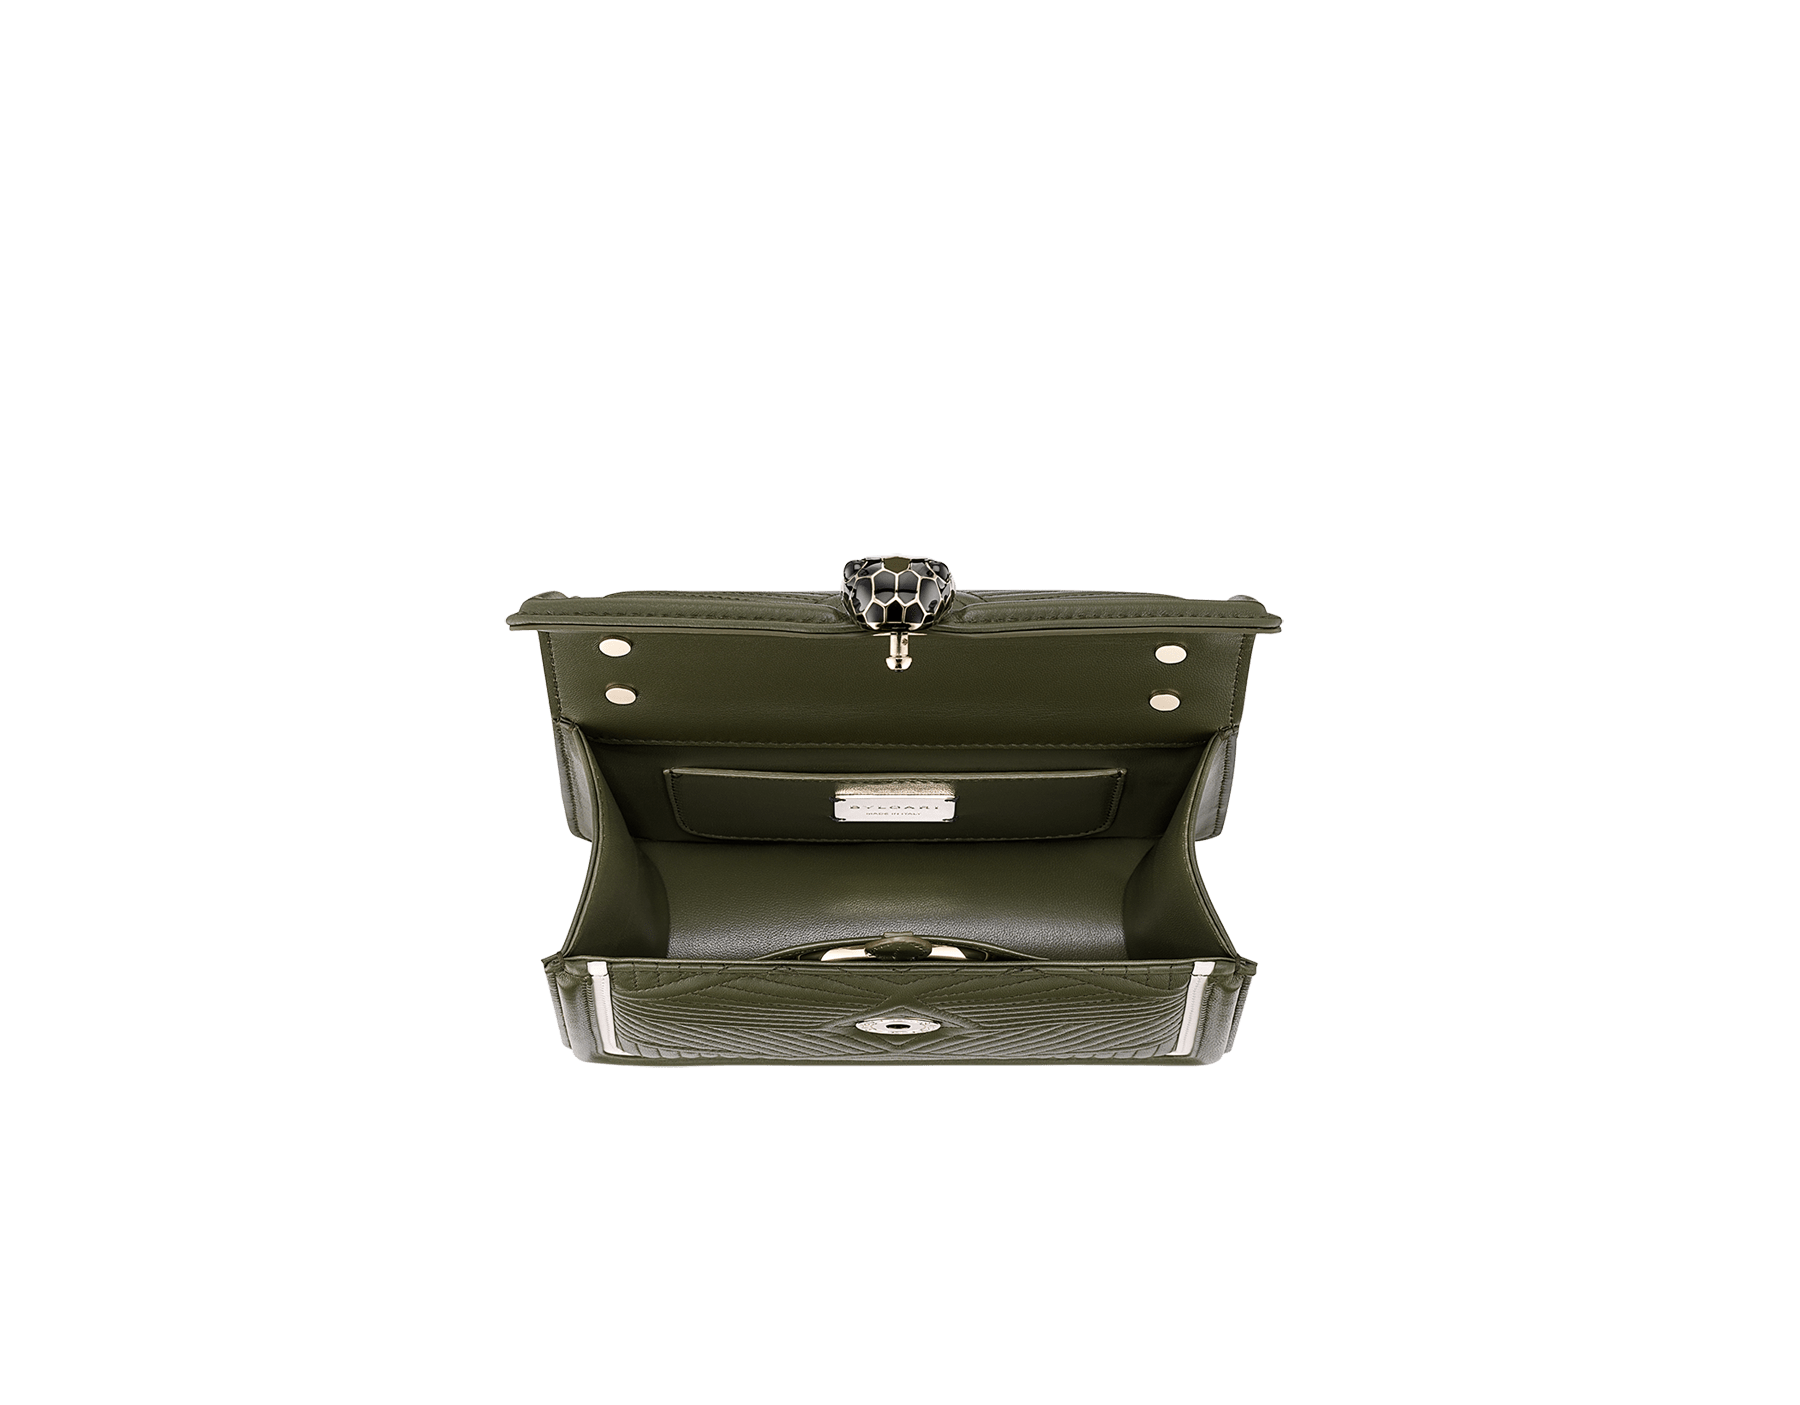 """Serpenti Diamond Blast"" top handle bag in mimetic jade quilted nappa leather and mimetic jade smooth calf leather frames. Iconic snakehead closure in light gold plated brass enriched with matte black and shiny mimetic jade enamel and black onyx eyes. 1063-FQD image 2"